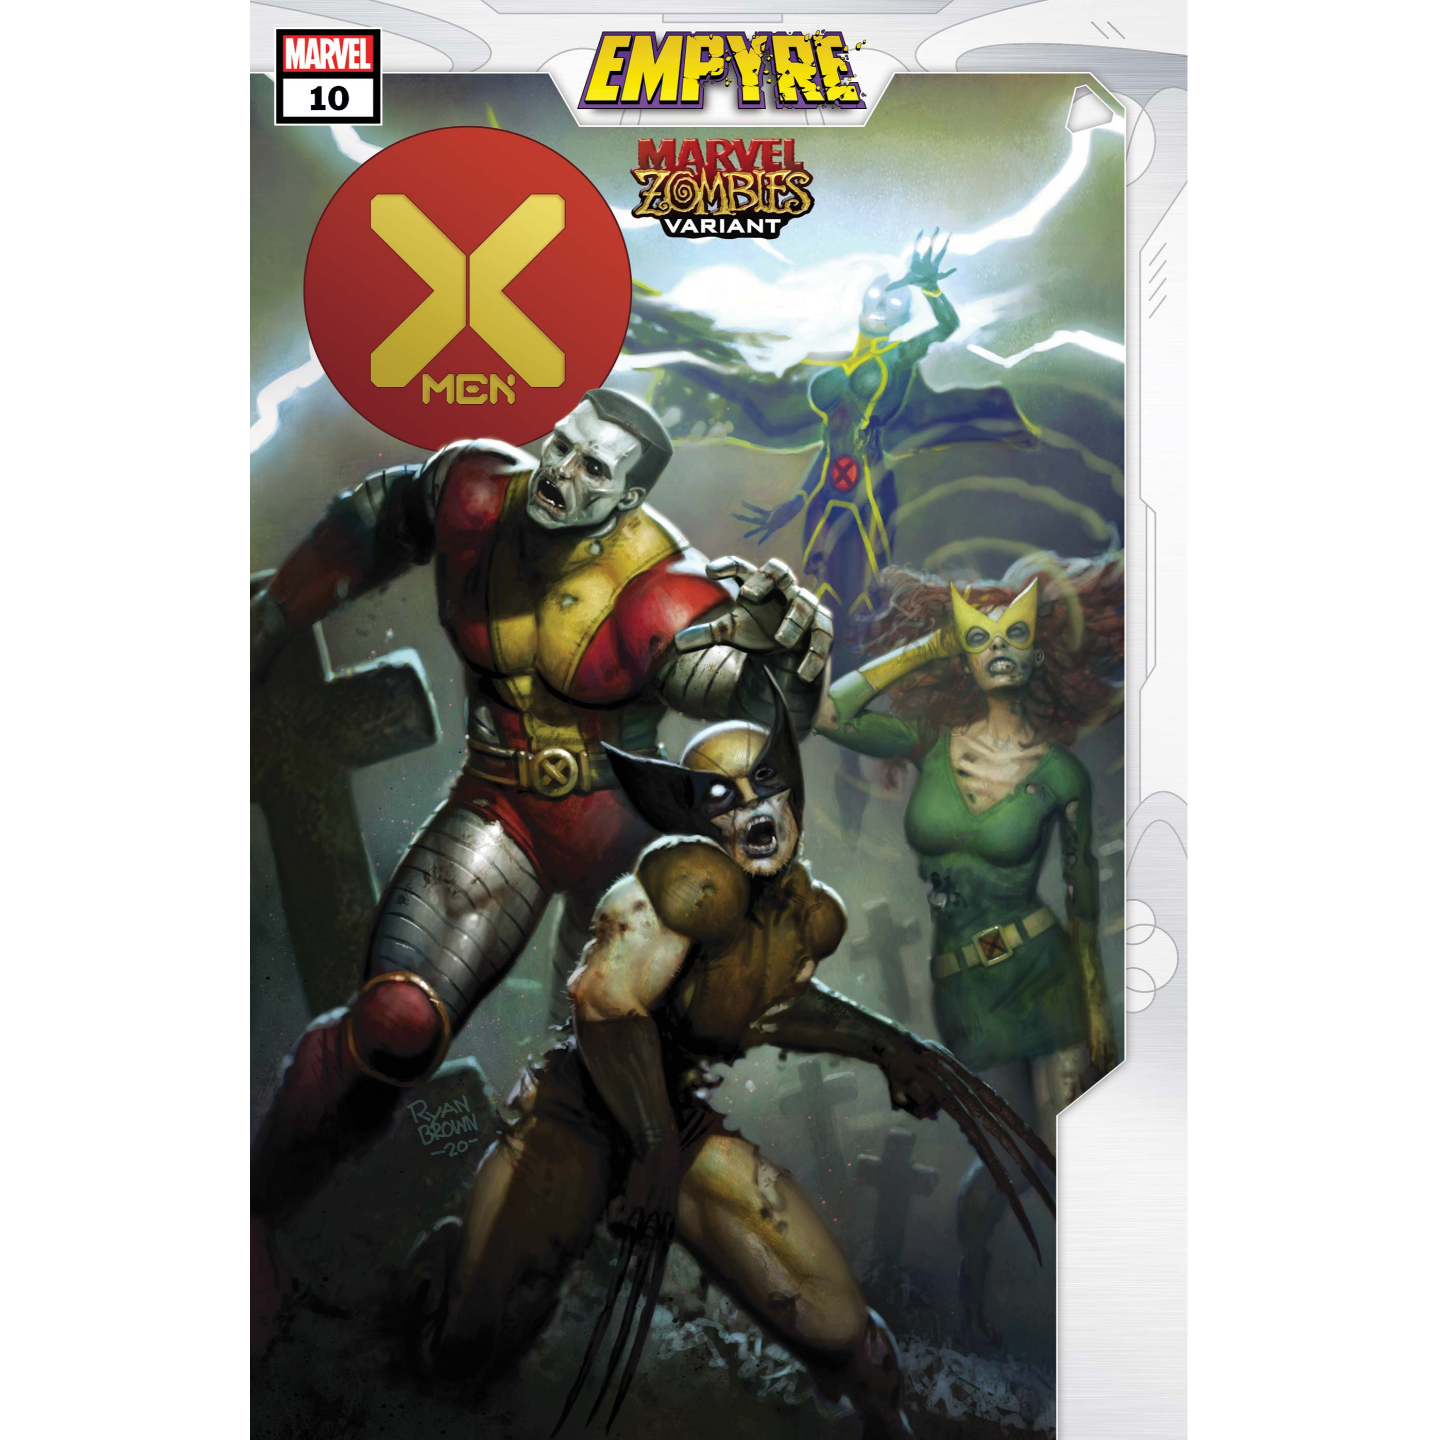 X-MEN #10 BROWN MARVEL ZOMBIES VAR EMP